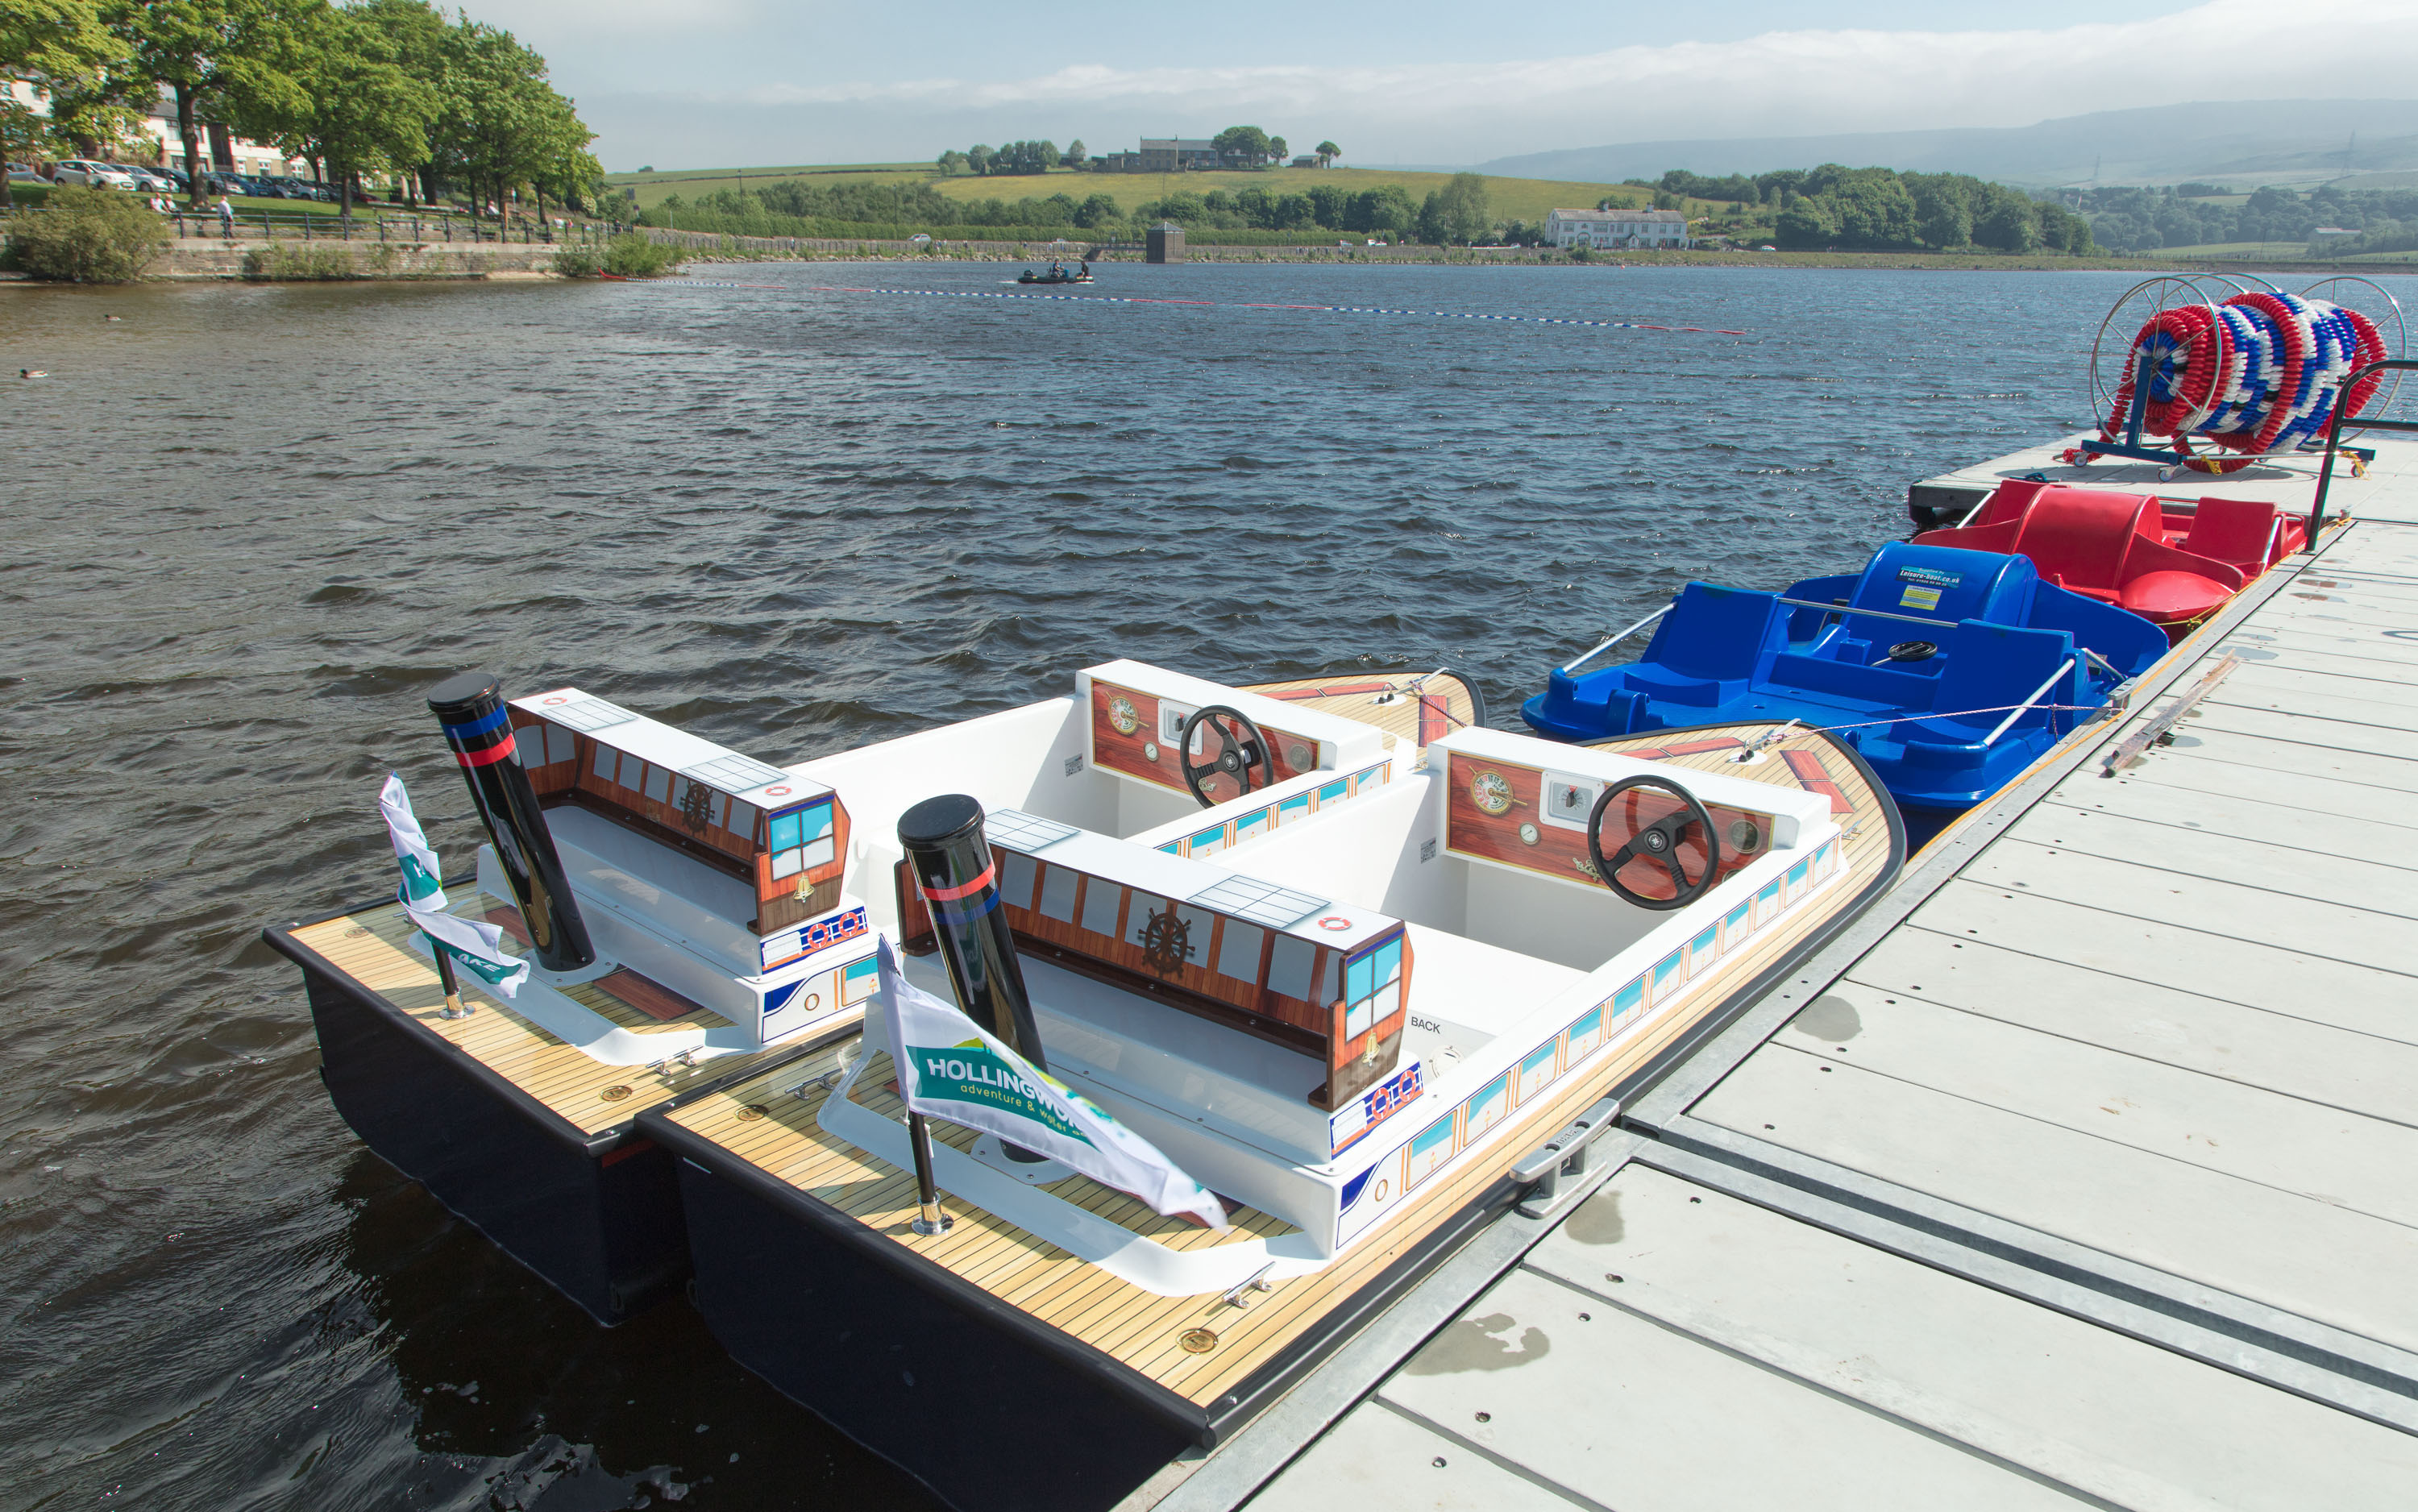 Featured image for FAMILY FUN WITH LAUNCH OF PADDLE BOATS AT REVAMPED HOLLINGWORTH LAKE ADVENTURE AND WATER ACTIVITY CENTRE